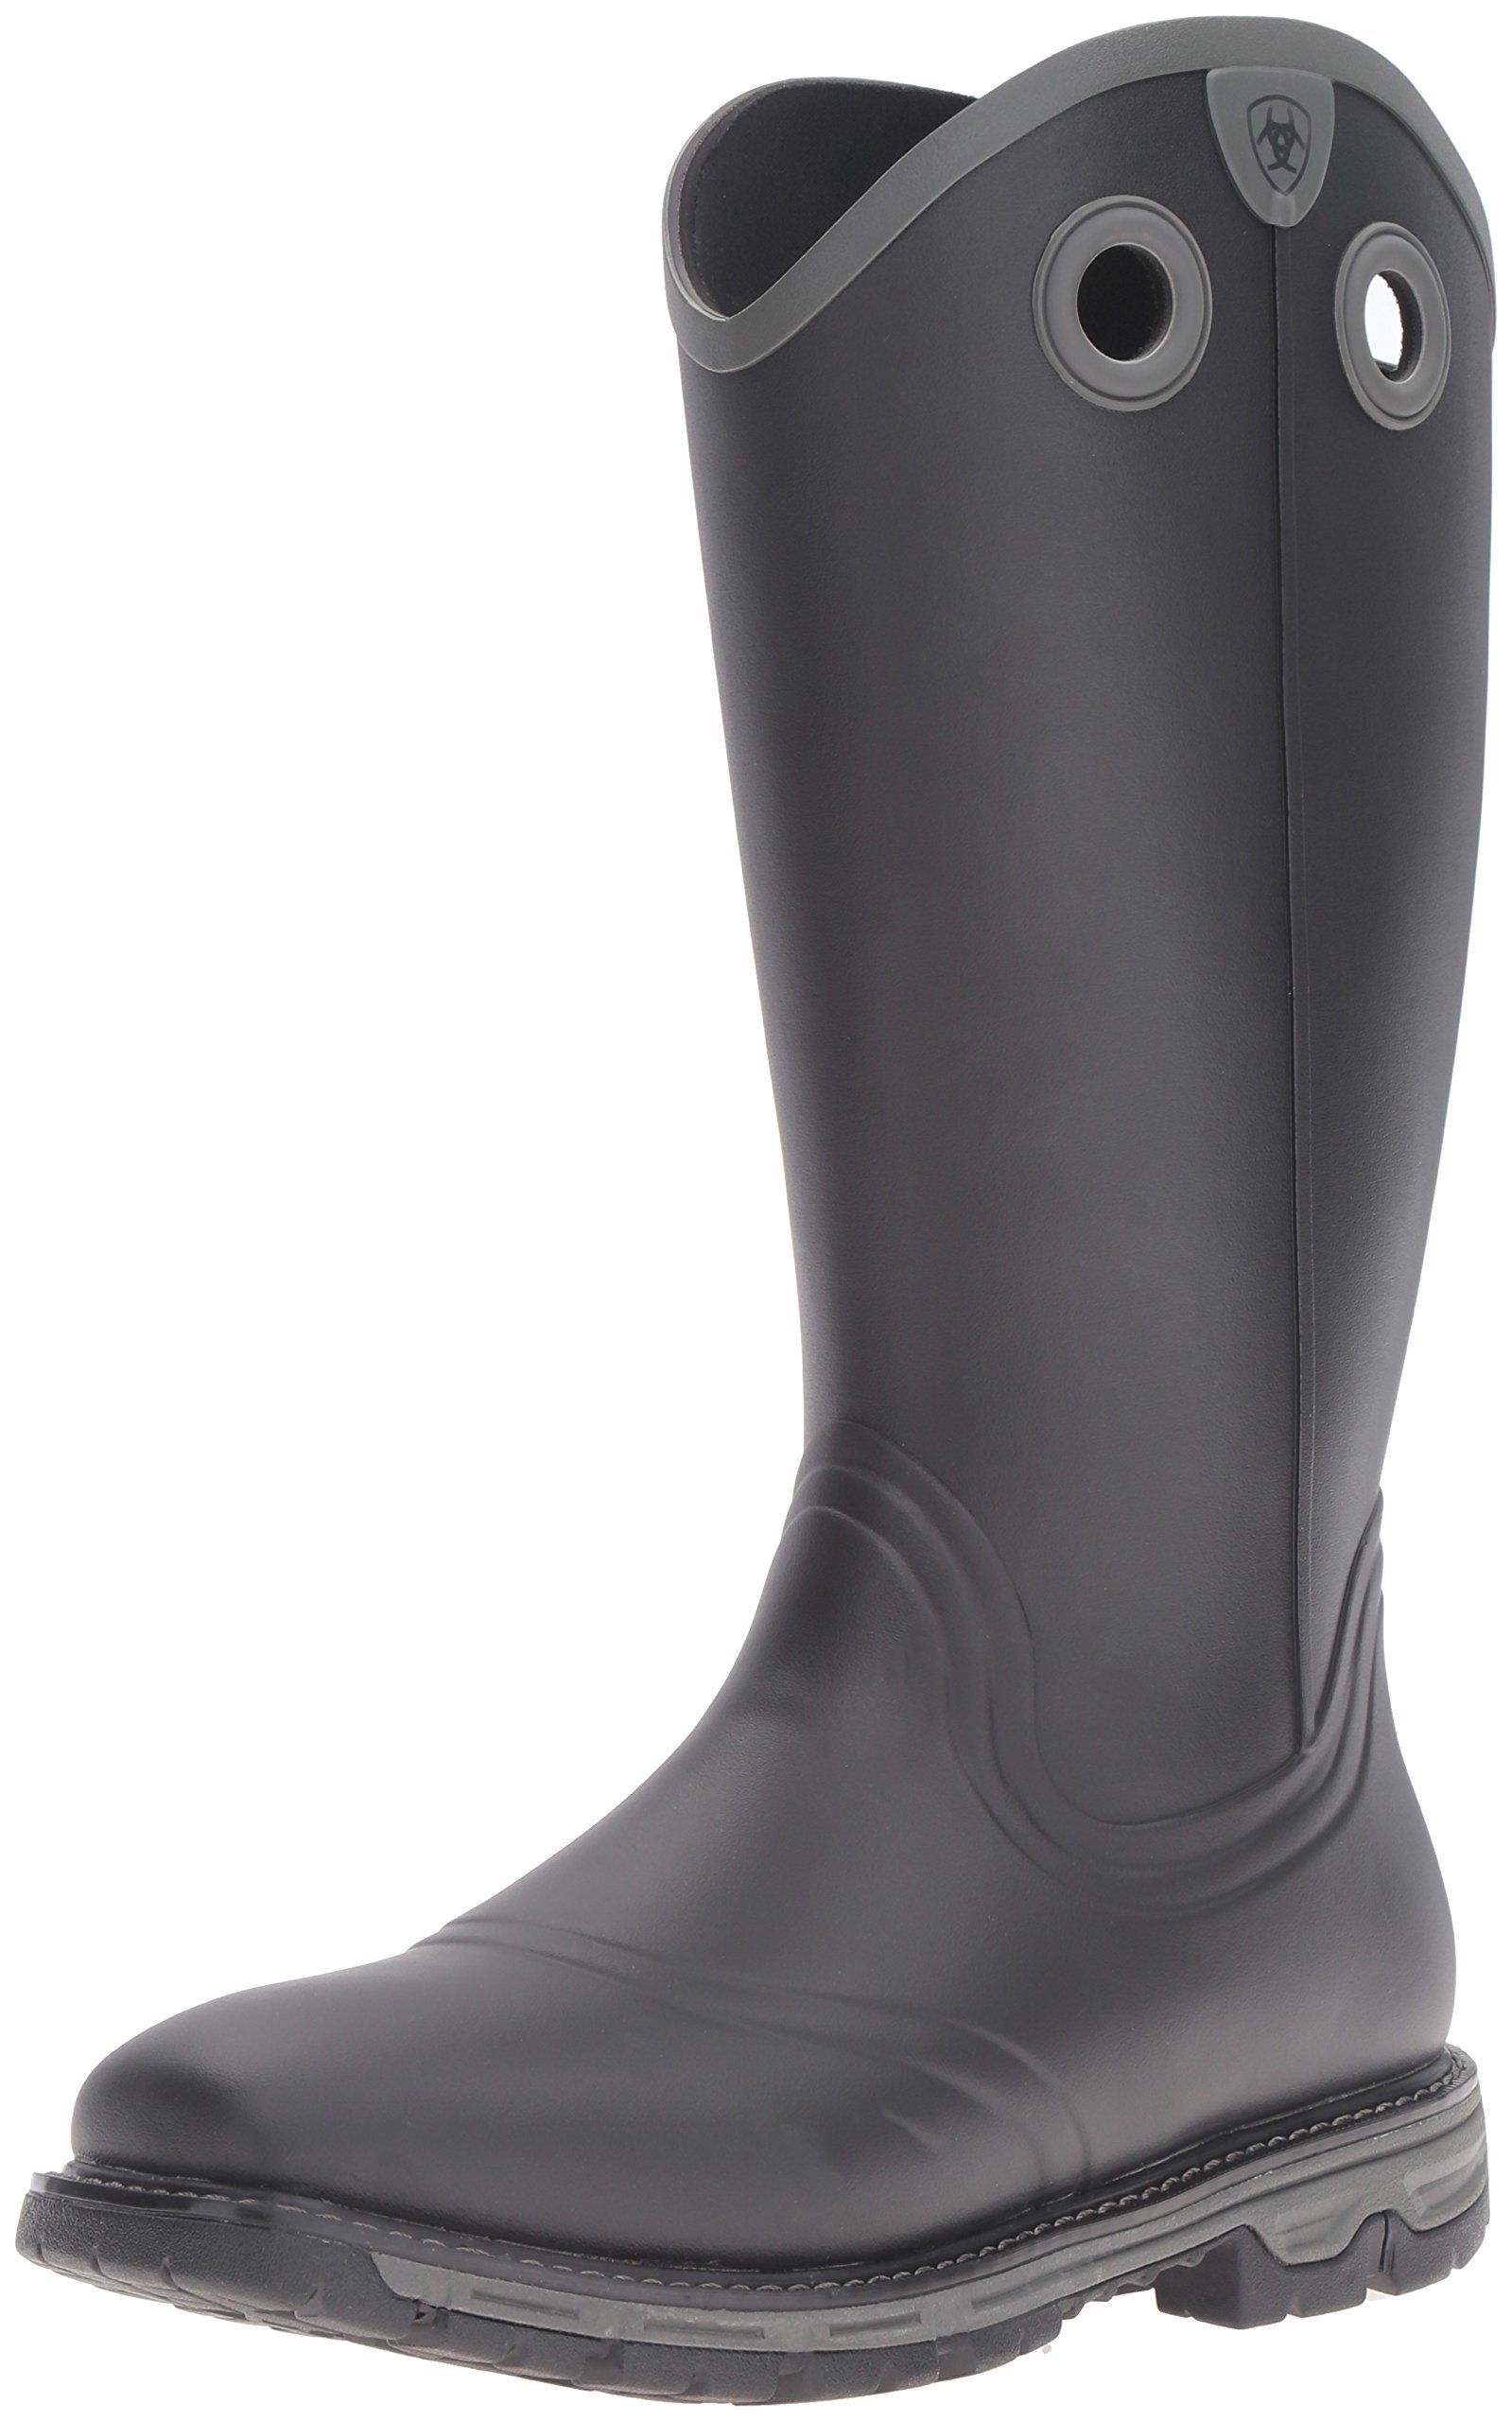 55104d7ec2206 Ariat Men's Conquest Rubber Buckaroo Insulated Hunting Boot, Black, 11 D US